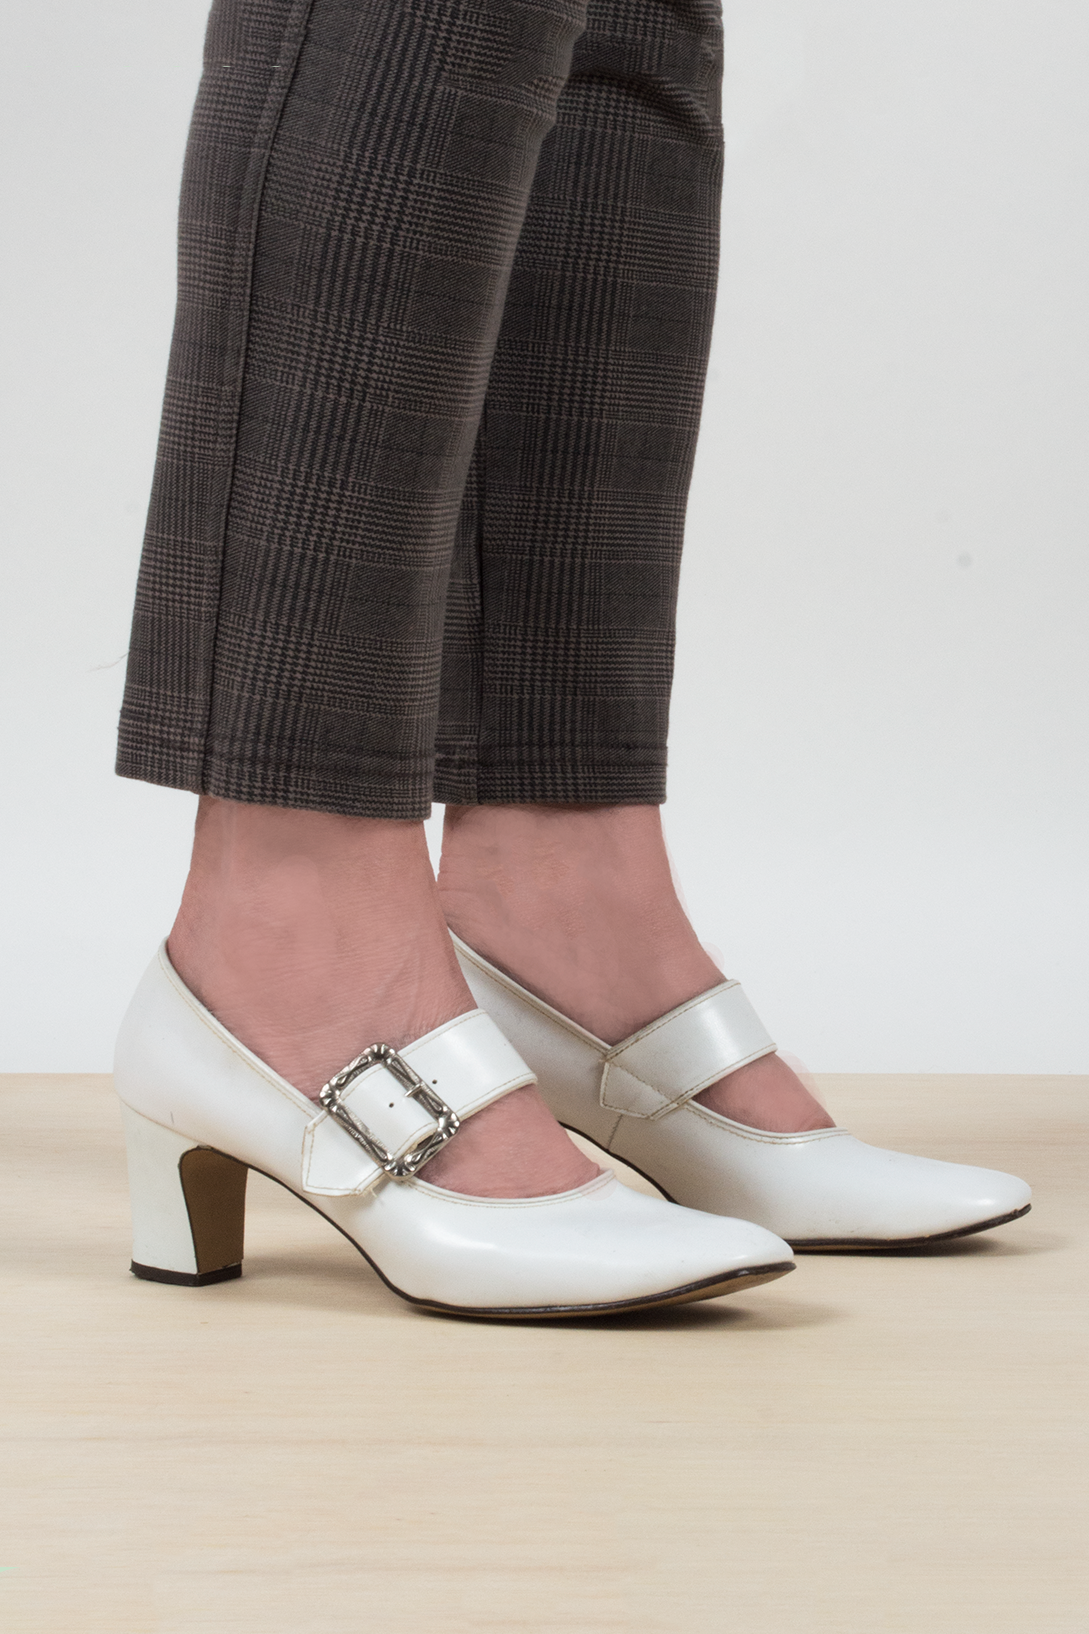 vintage white Mary-Jane heels with silver buckle